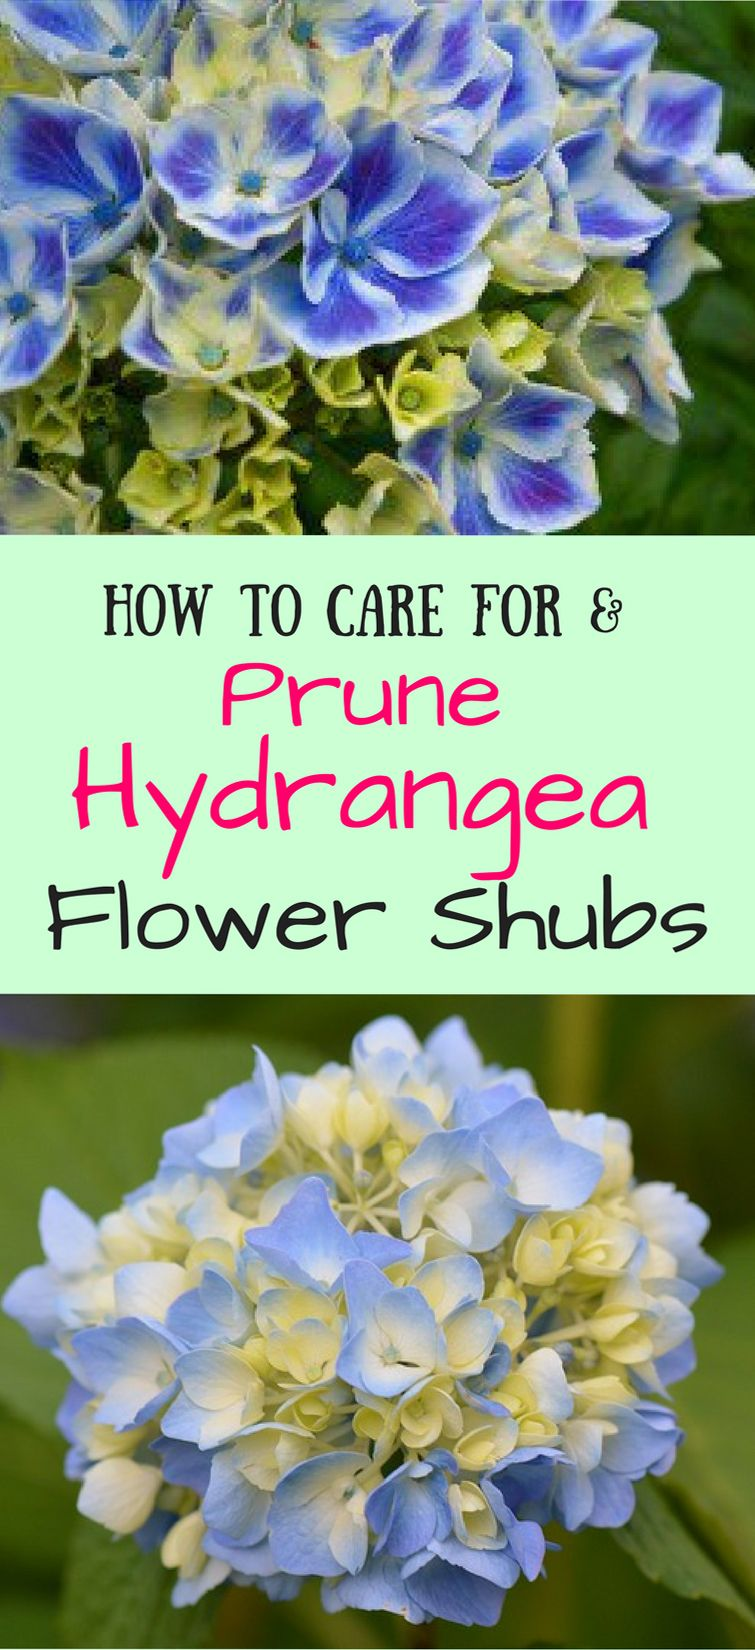 How To Care For And Prune Hydrangea Flower Shrubs Lets Plant